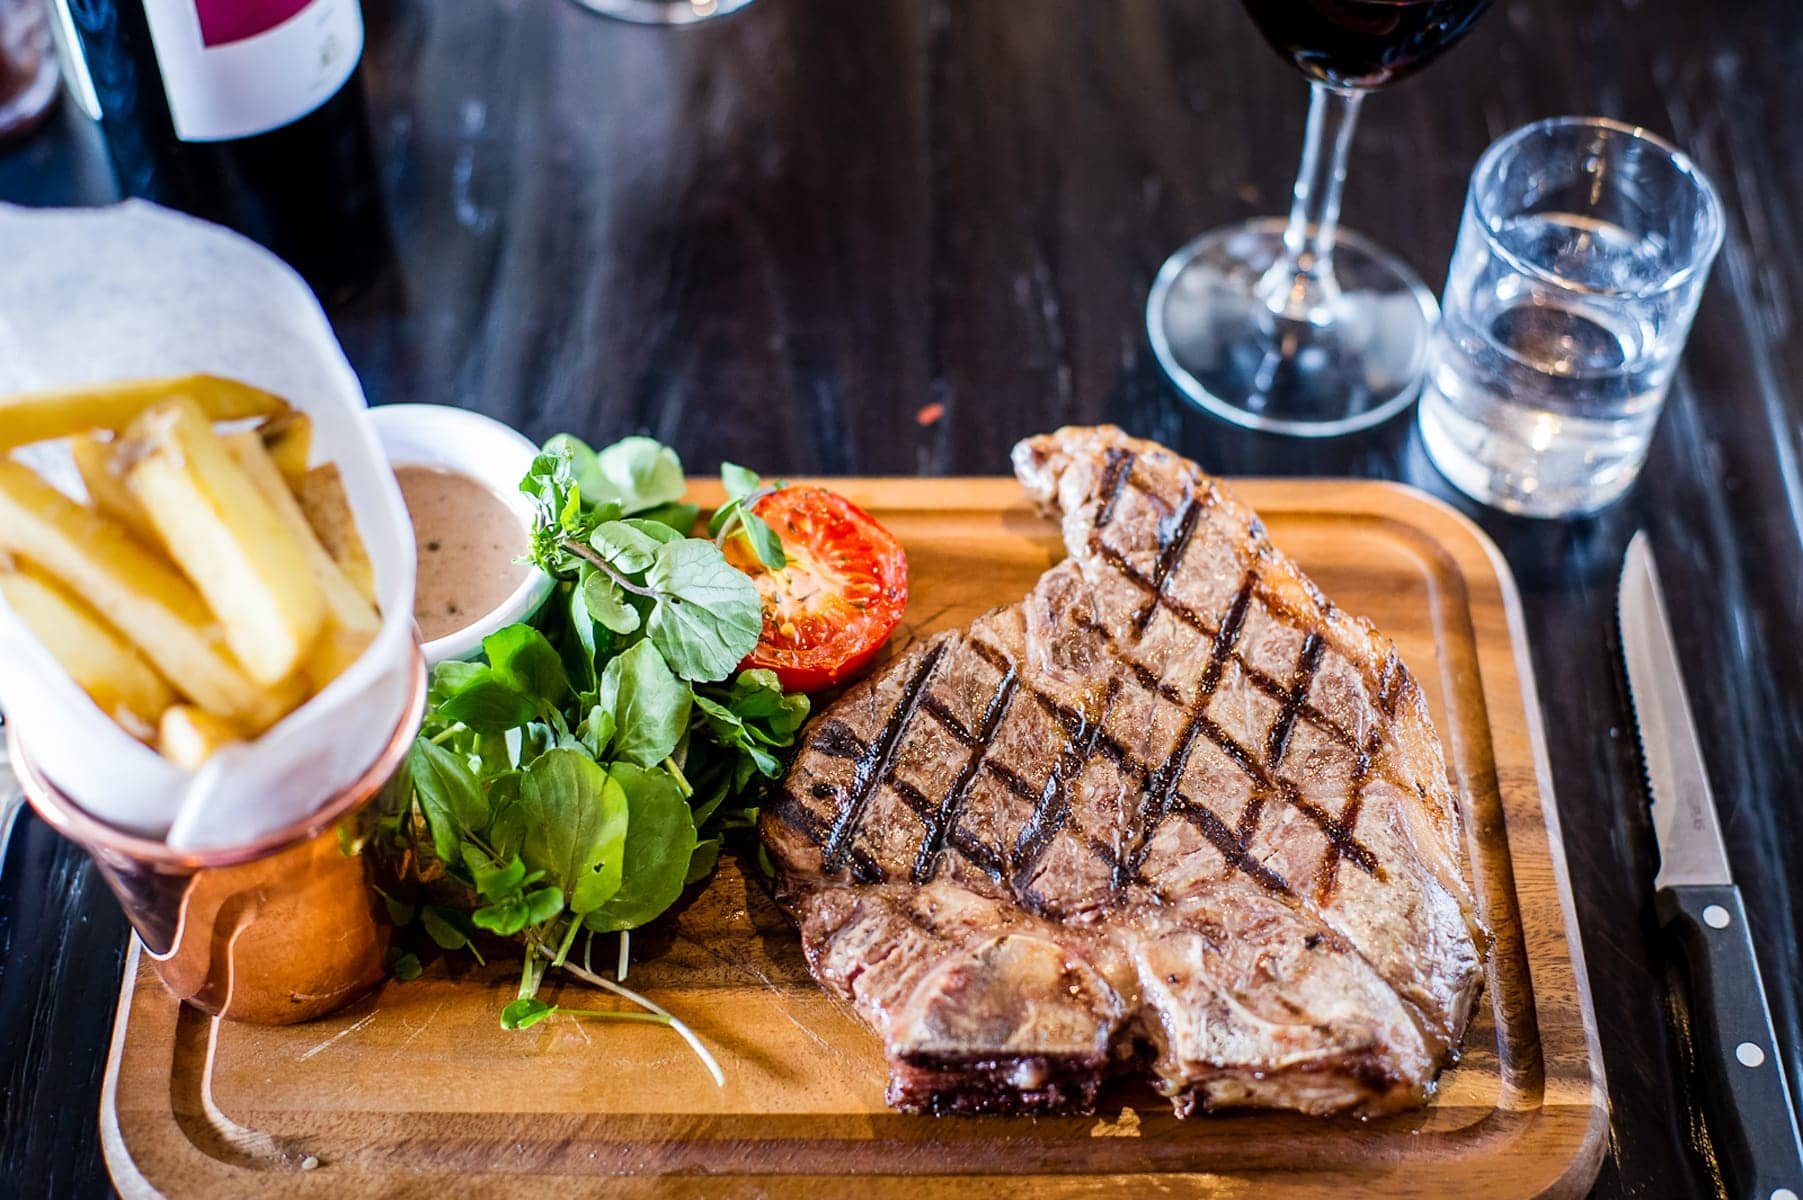 Steak and food on a board at The Riverside Bar & Restaurant Cambridge